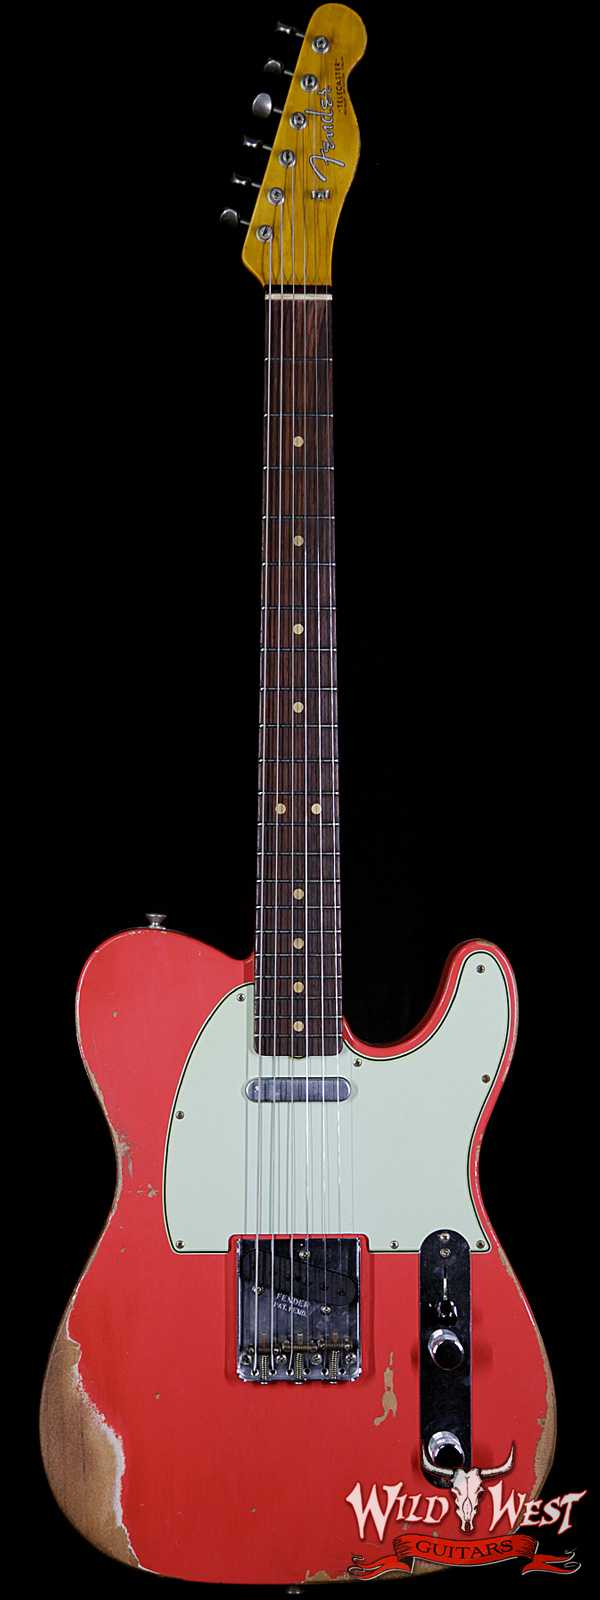 Fender Custom Shop 1963 Telecaster Heavy Relic Rosewood Fingerboard Fiesta Red